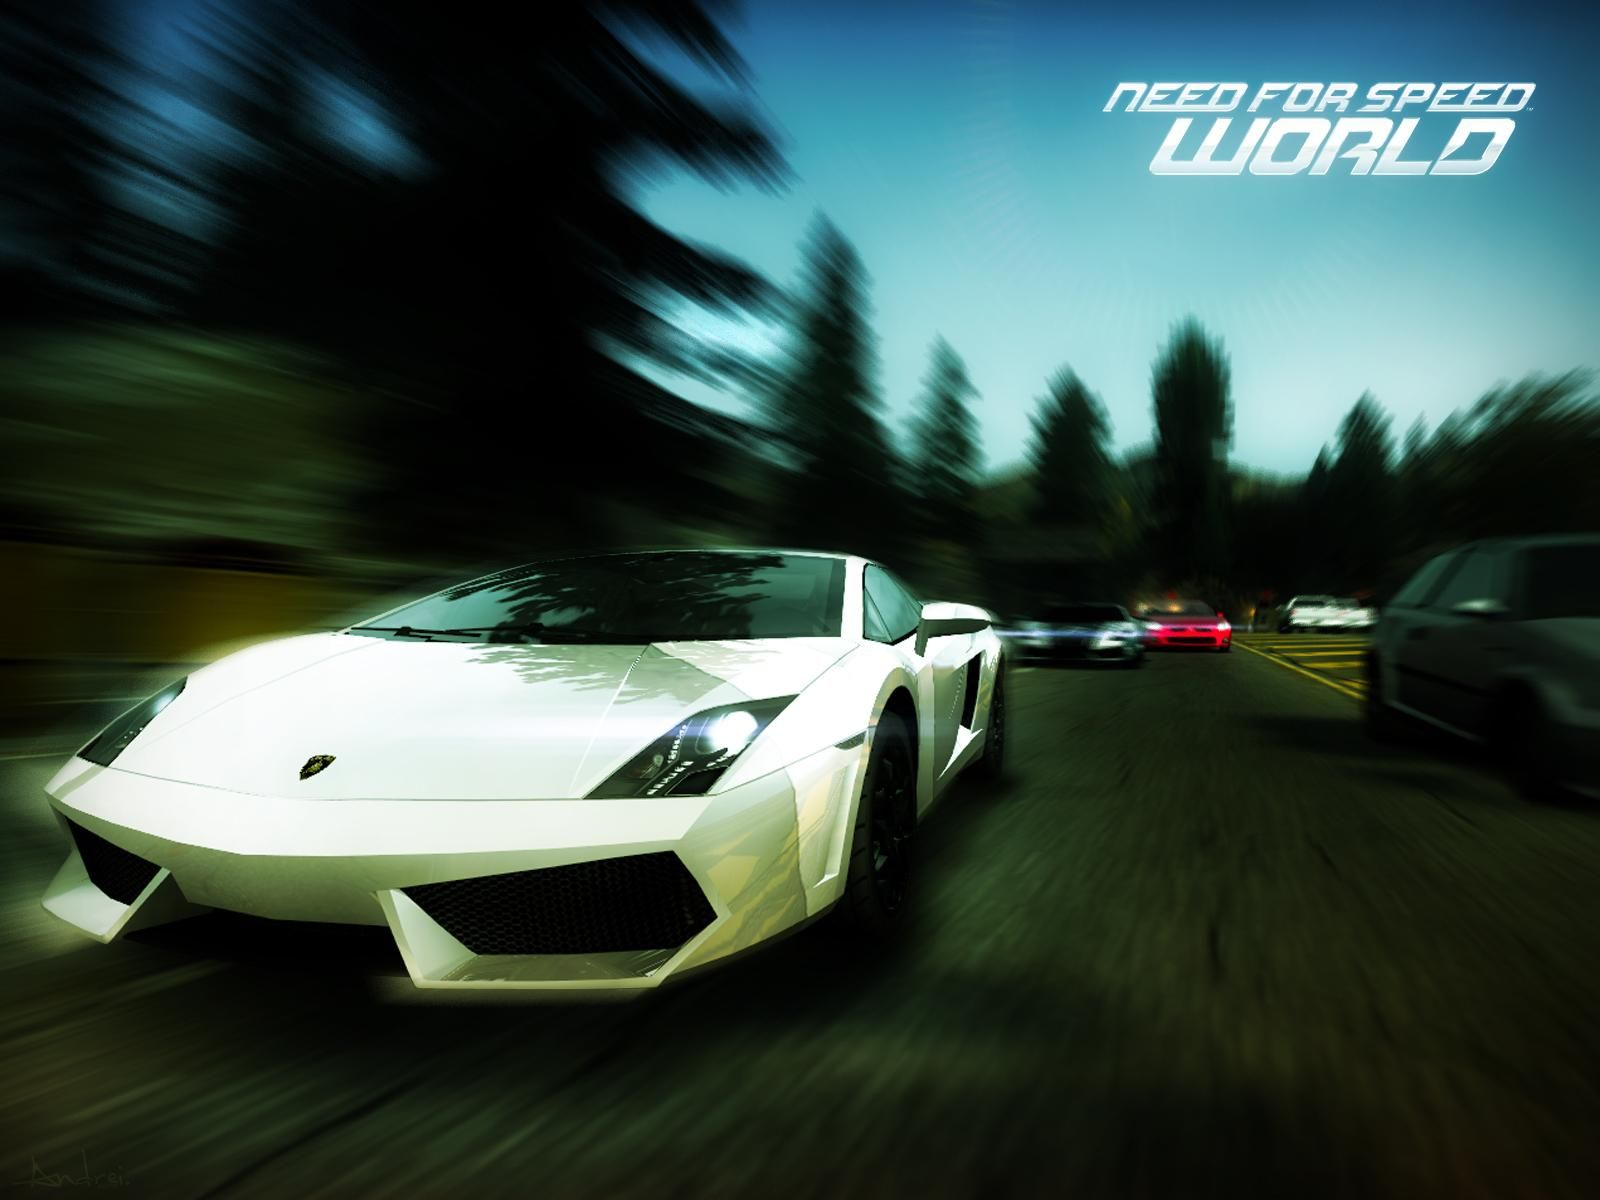 Need for speed world 2 wallpaper download here for Need for speed wallpaper